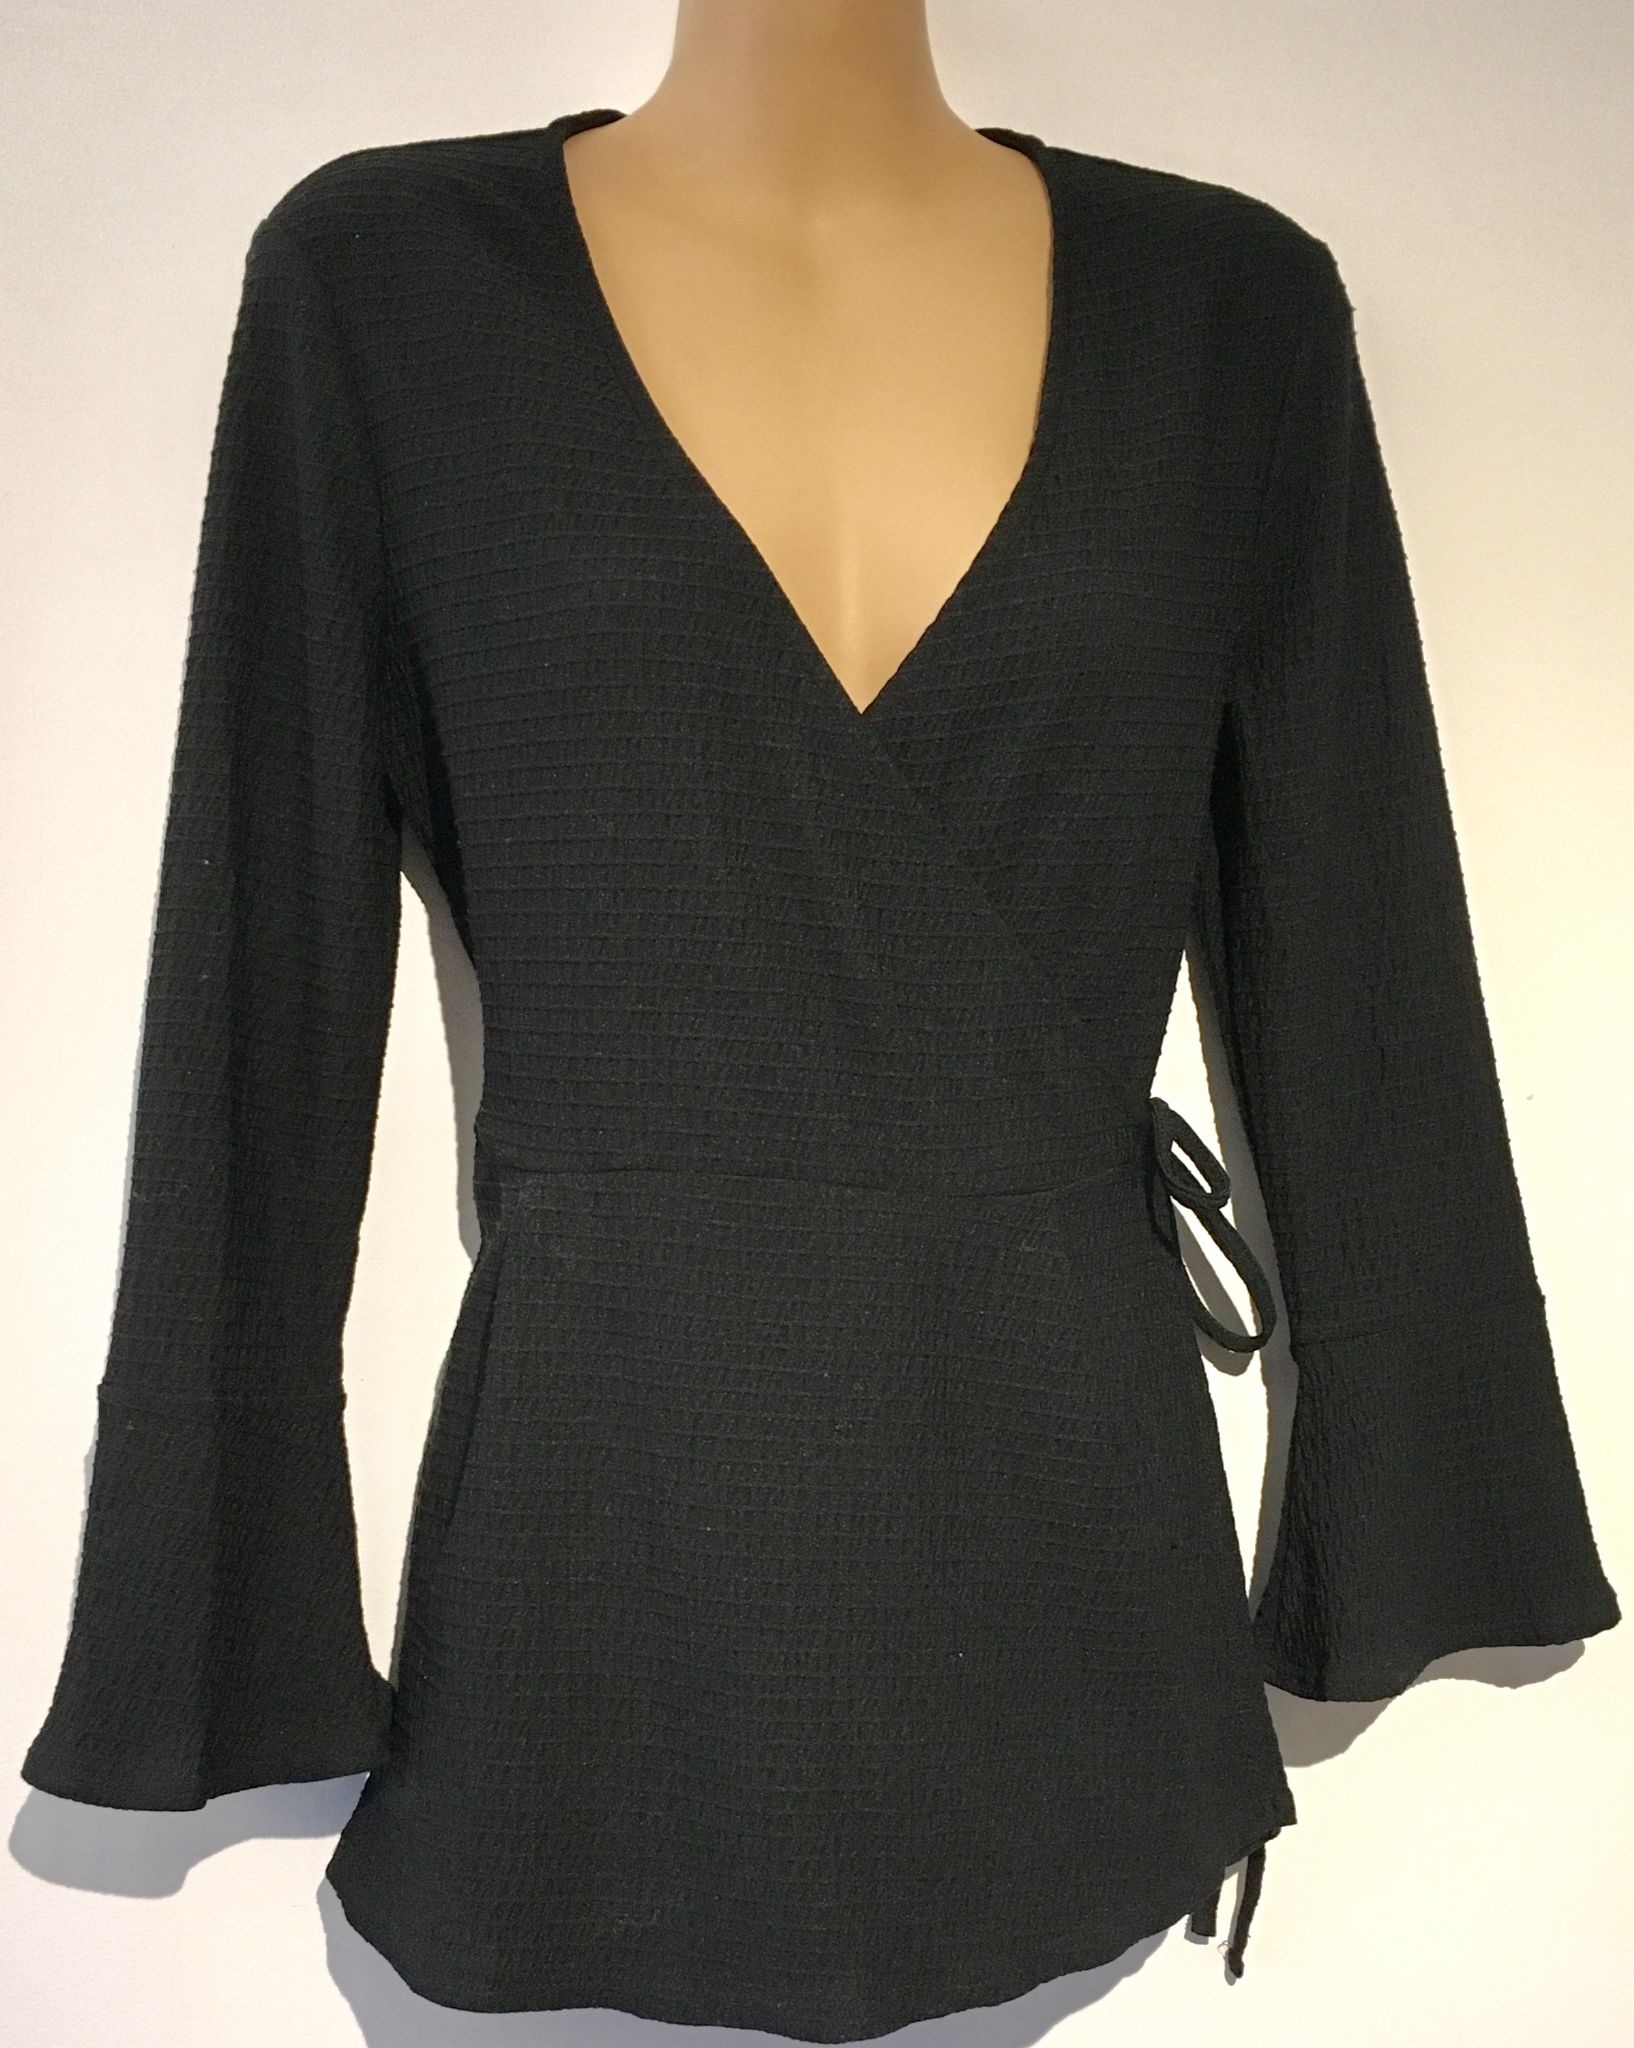 ea4eef9e3600c TOPSHOP MATERNITY/NURSING BLACK TEXTURED WRAP LONG SLEEVED TOP SIZE 10